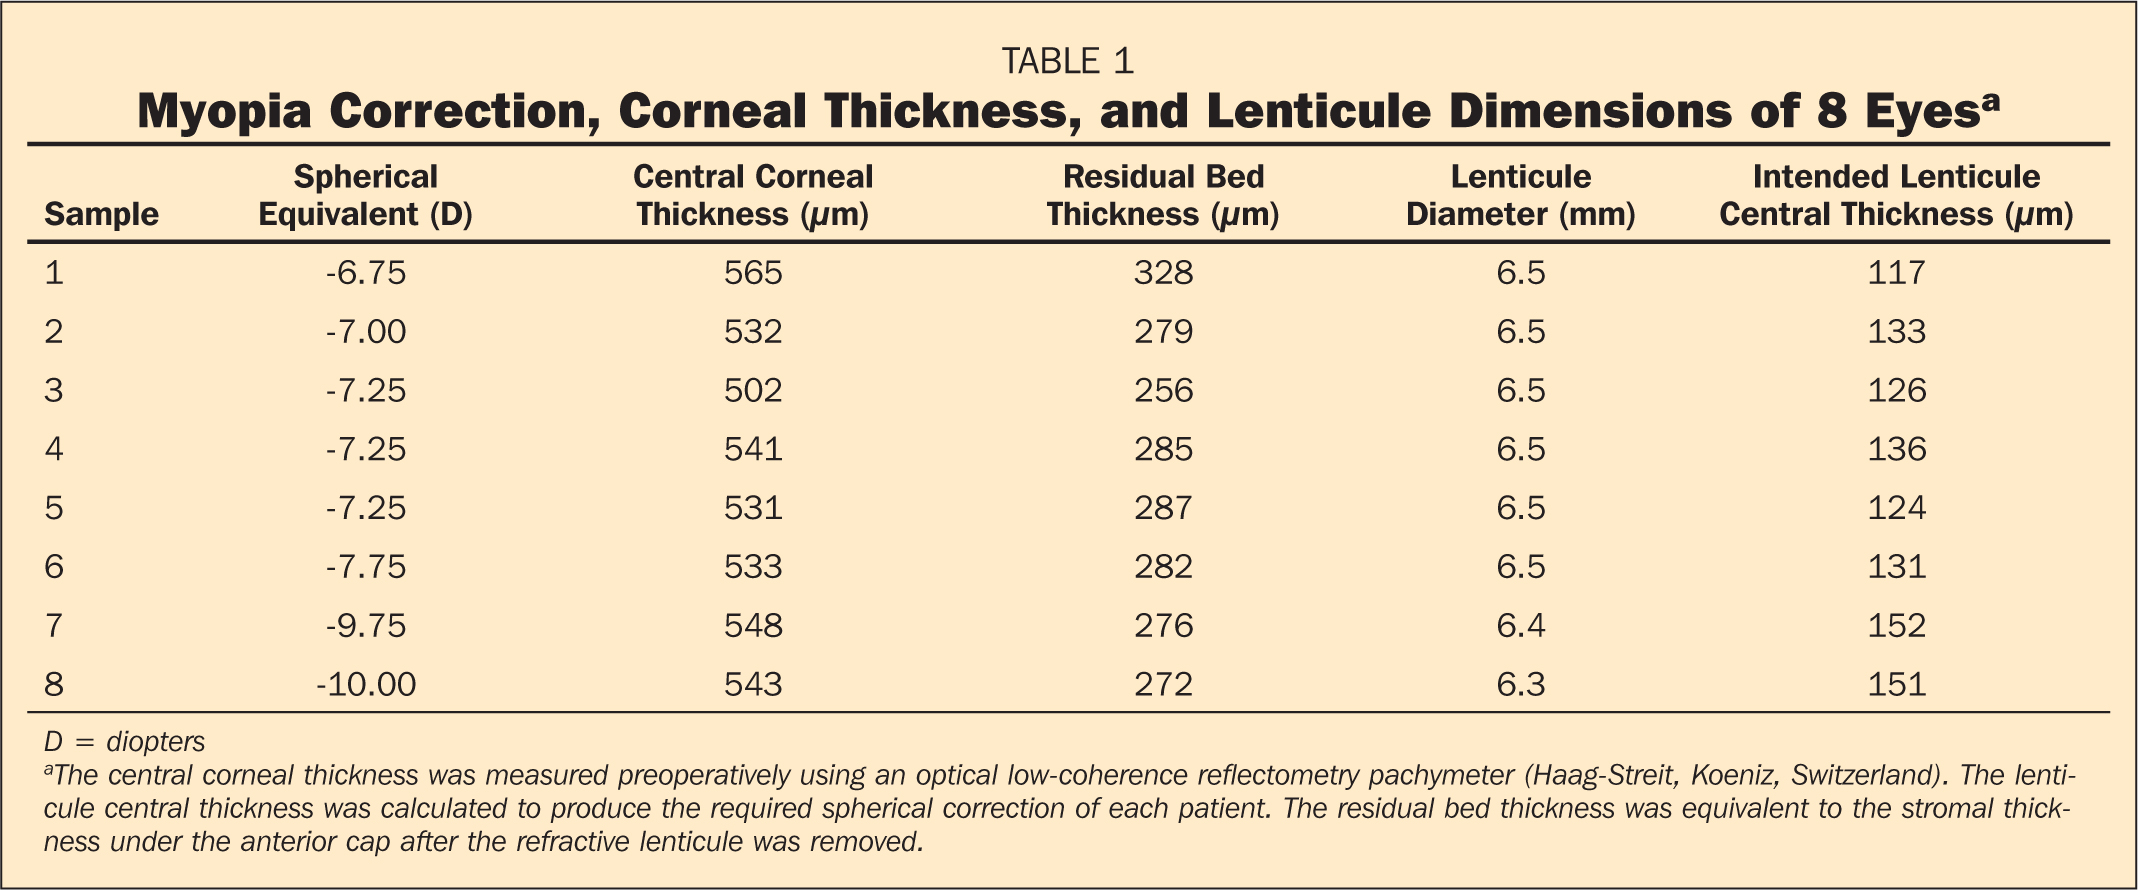 Myopia Correction, Corneal Thickness, and Lenticule Dimensions of 8 Eyesa